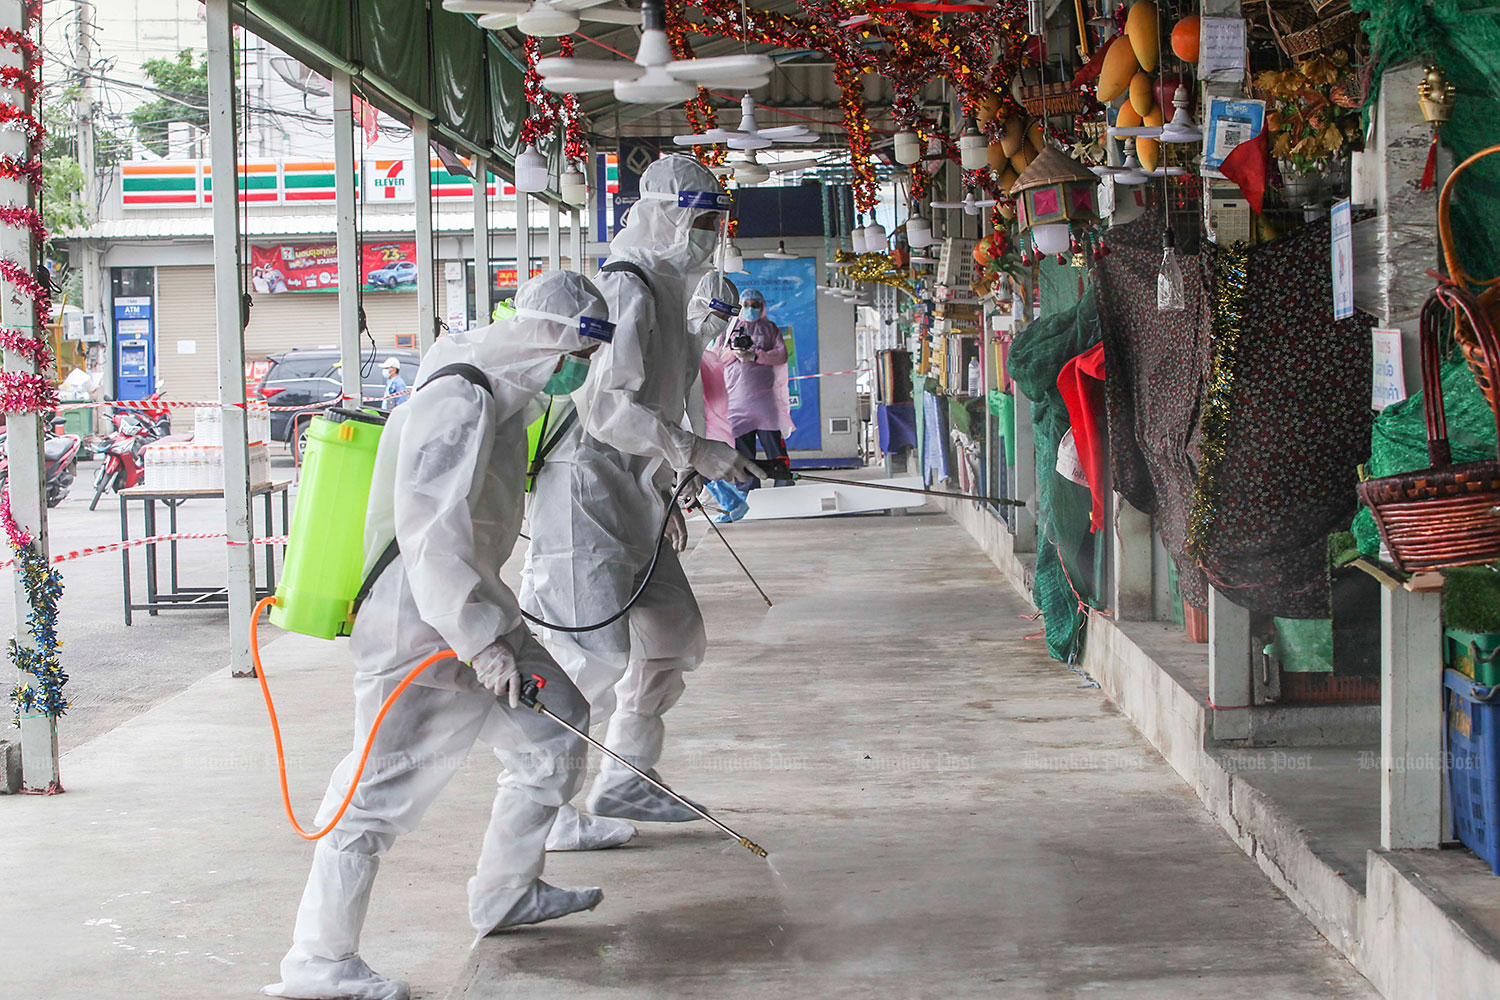 Officials in all full protective gear spray disinfectant on the pavement at Bang Yai central market which has reopened for business after 14 days. The market in Nonthaburi was designated as a maximum control zone after being linked with Covid-infections late last year. (Photo by Pattarapong Chatpattarasill)